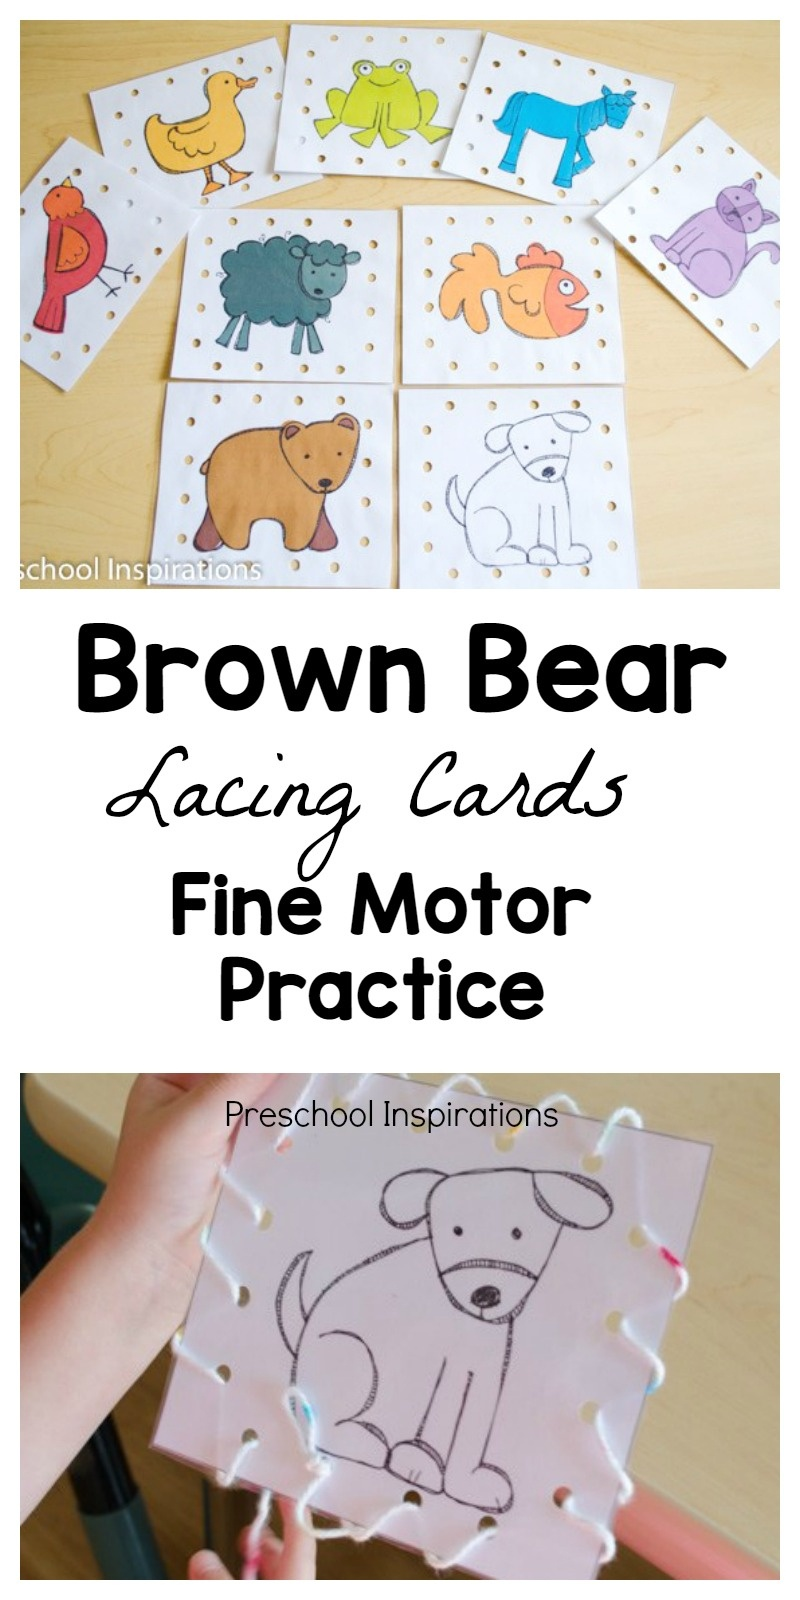 Brown Bear Lacing Cards Busy Bag - Preschool Inspirations - Free Printable Lacing Cards